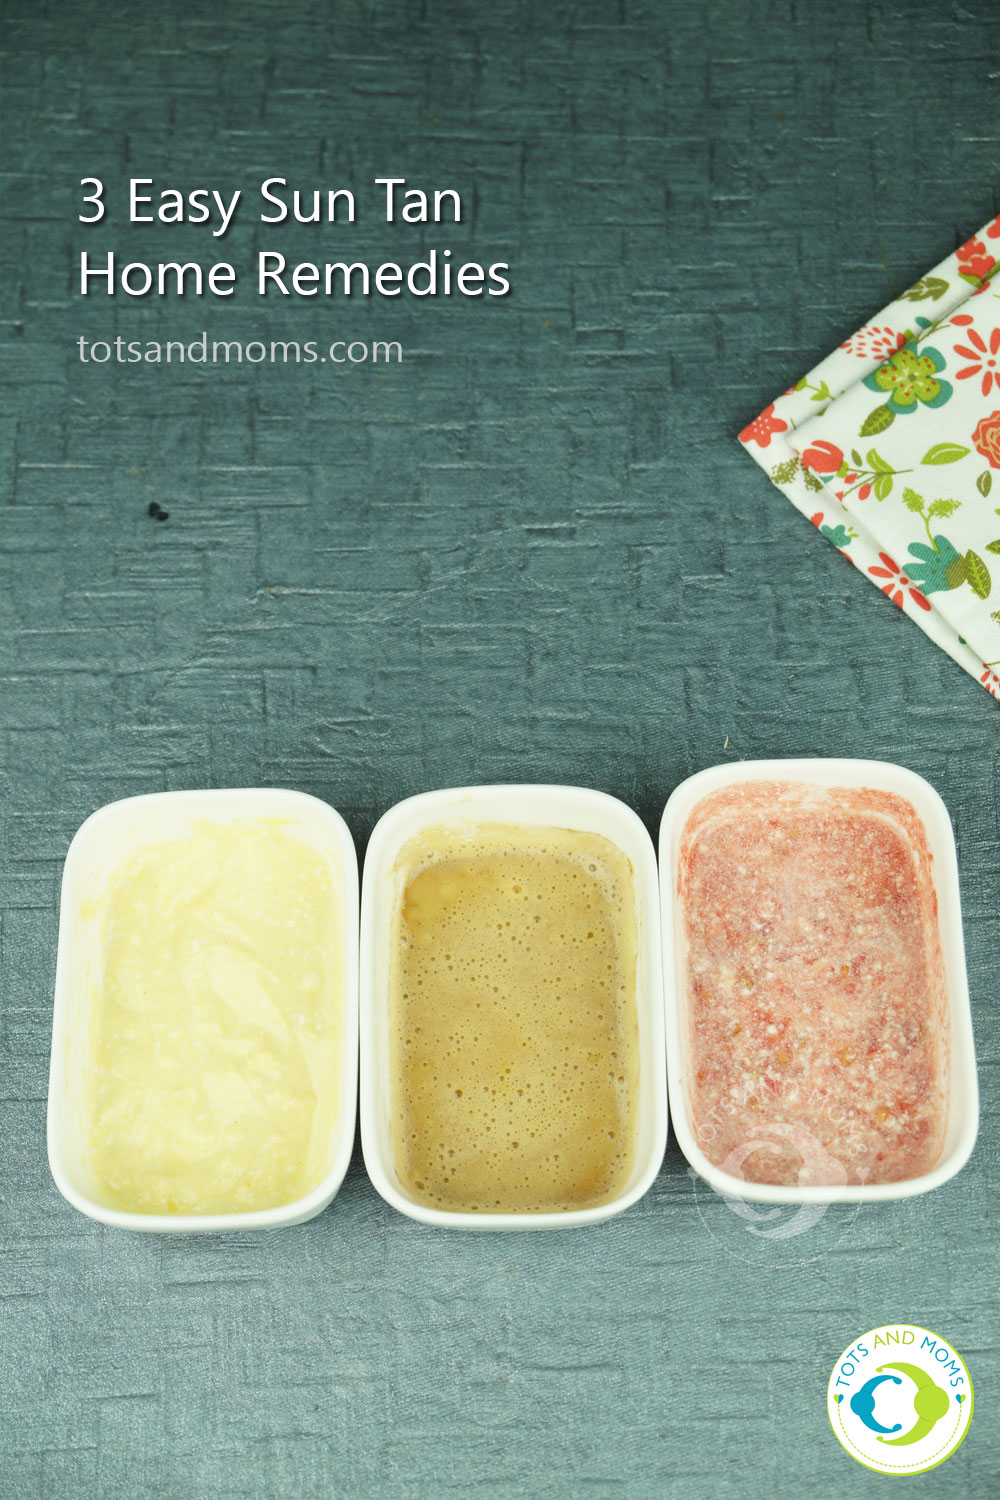 3 Easy Sun Tan Home Remedies For Kids And Moms Tots And Moms